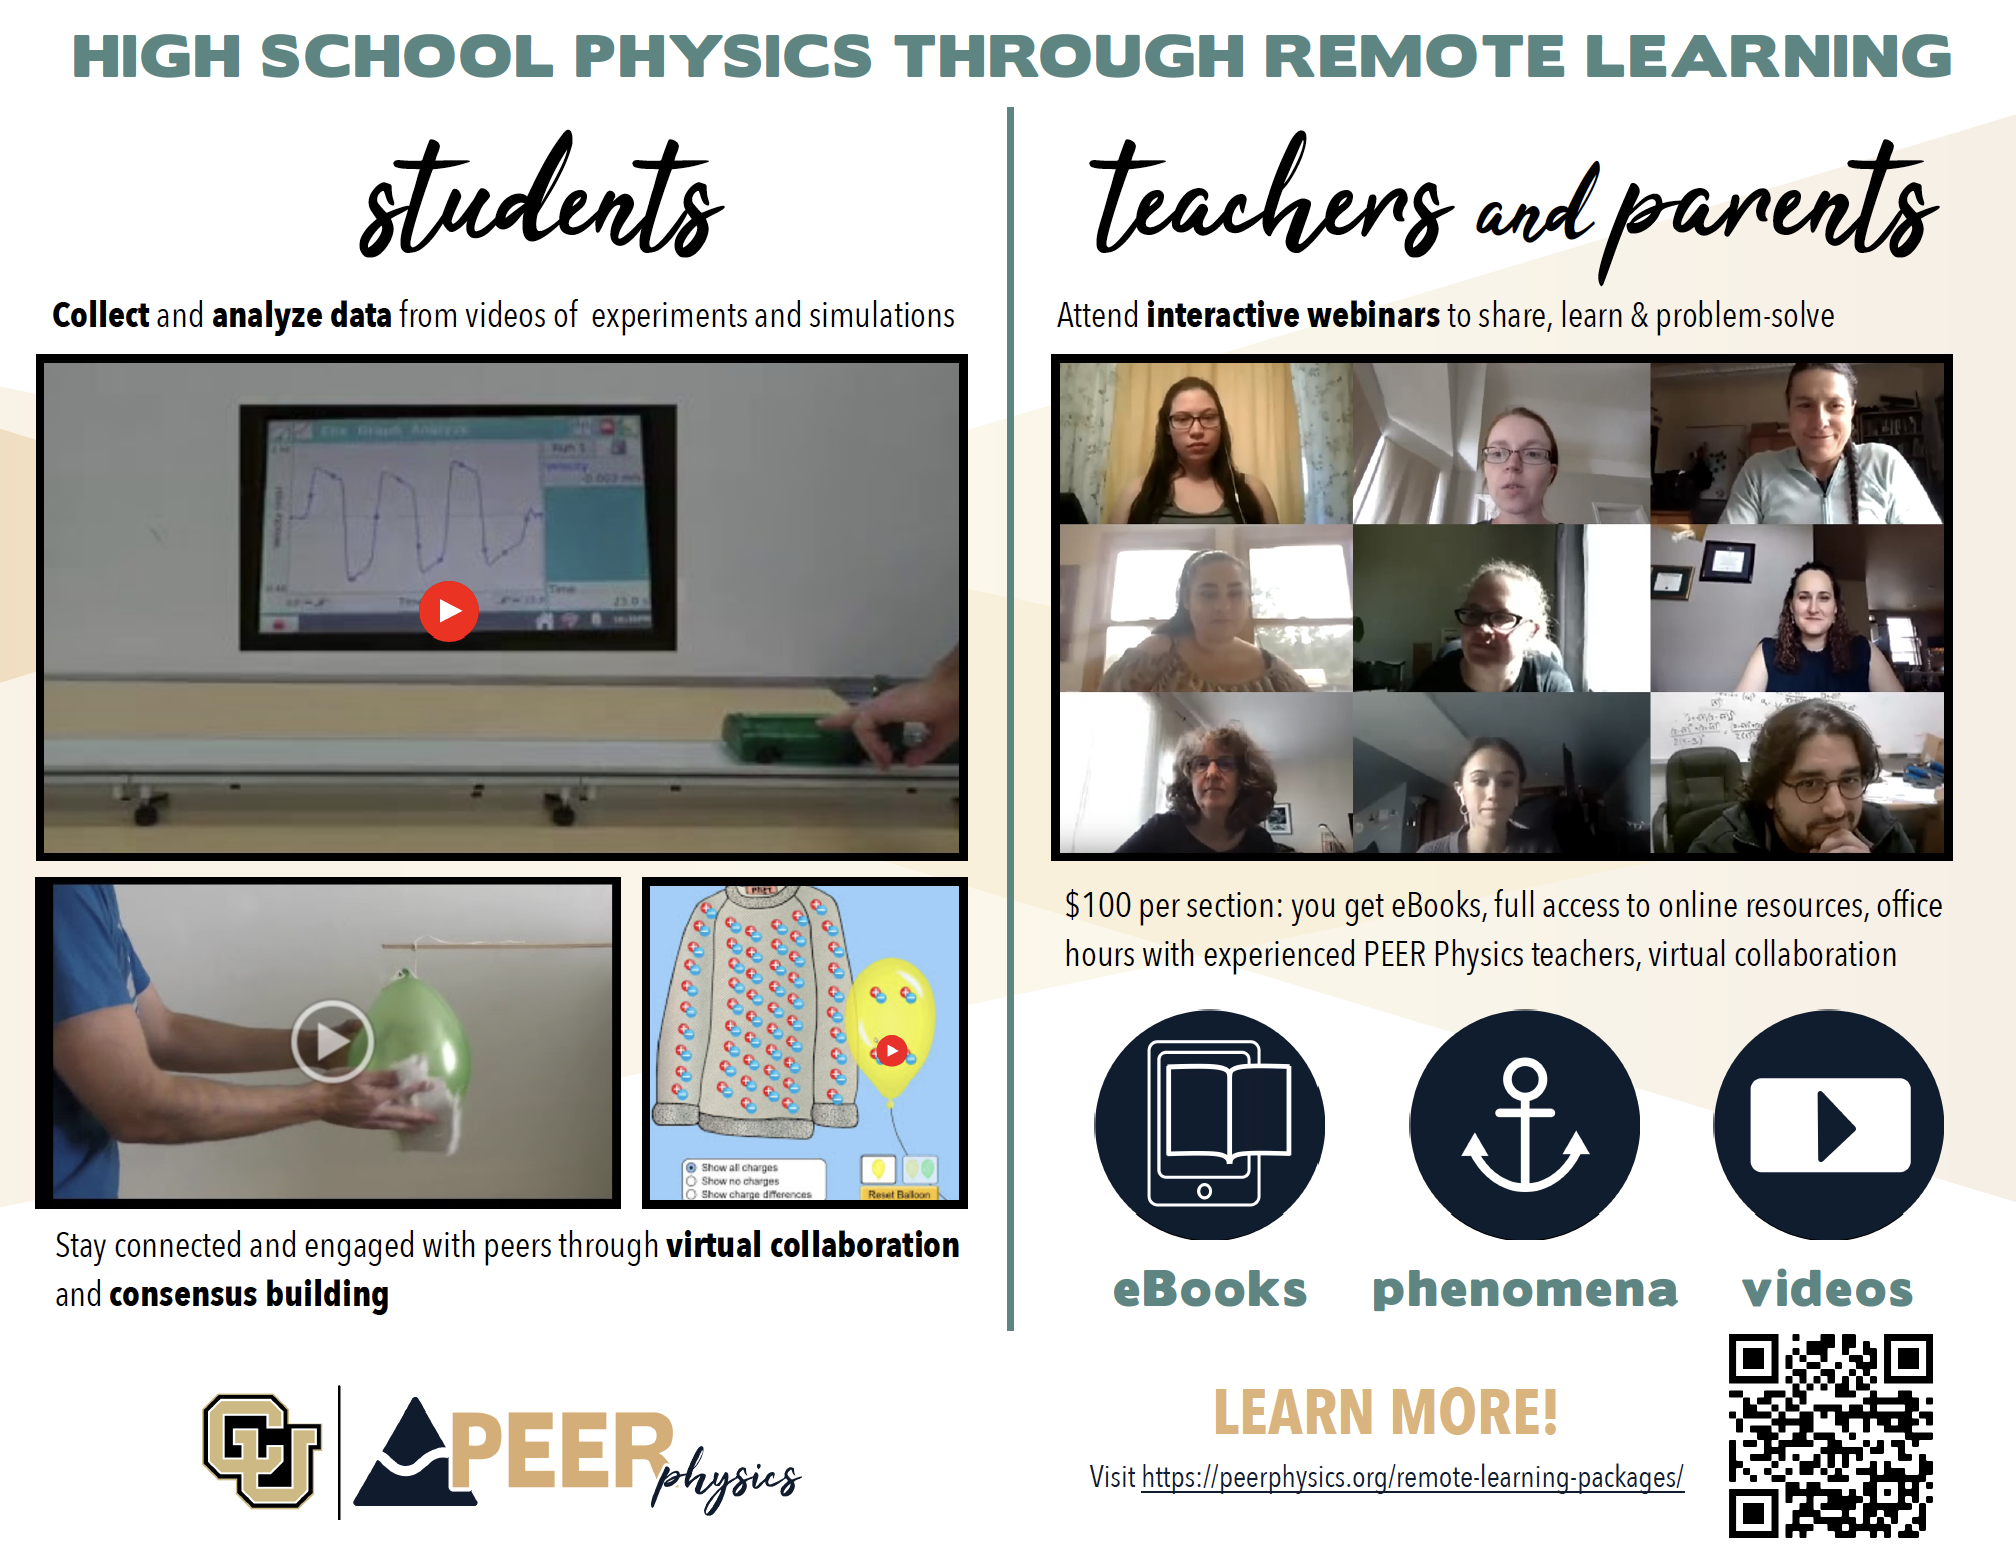 Visit https://peerphysics.org/remote-learning-packages/